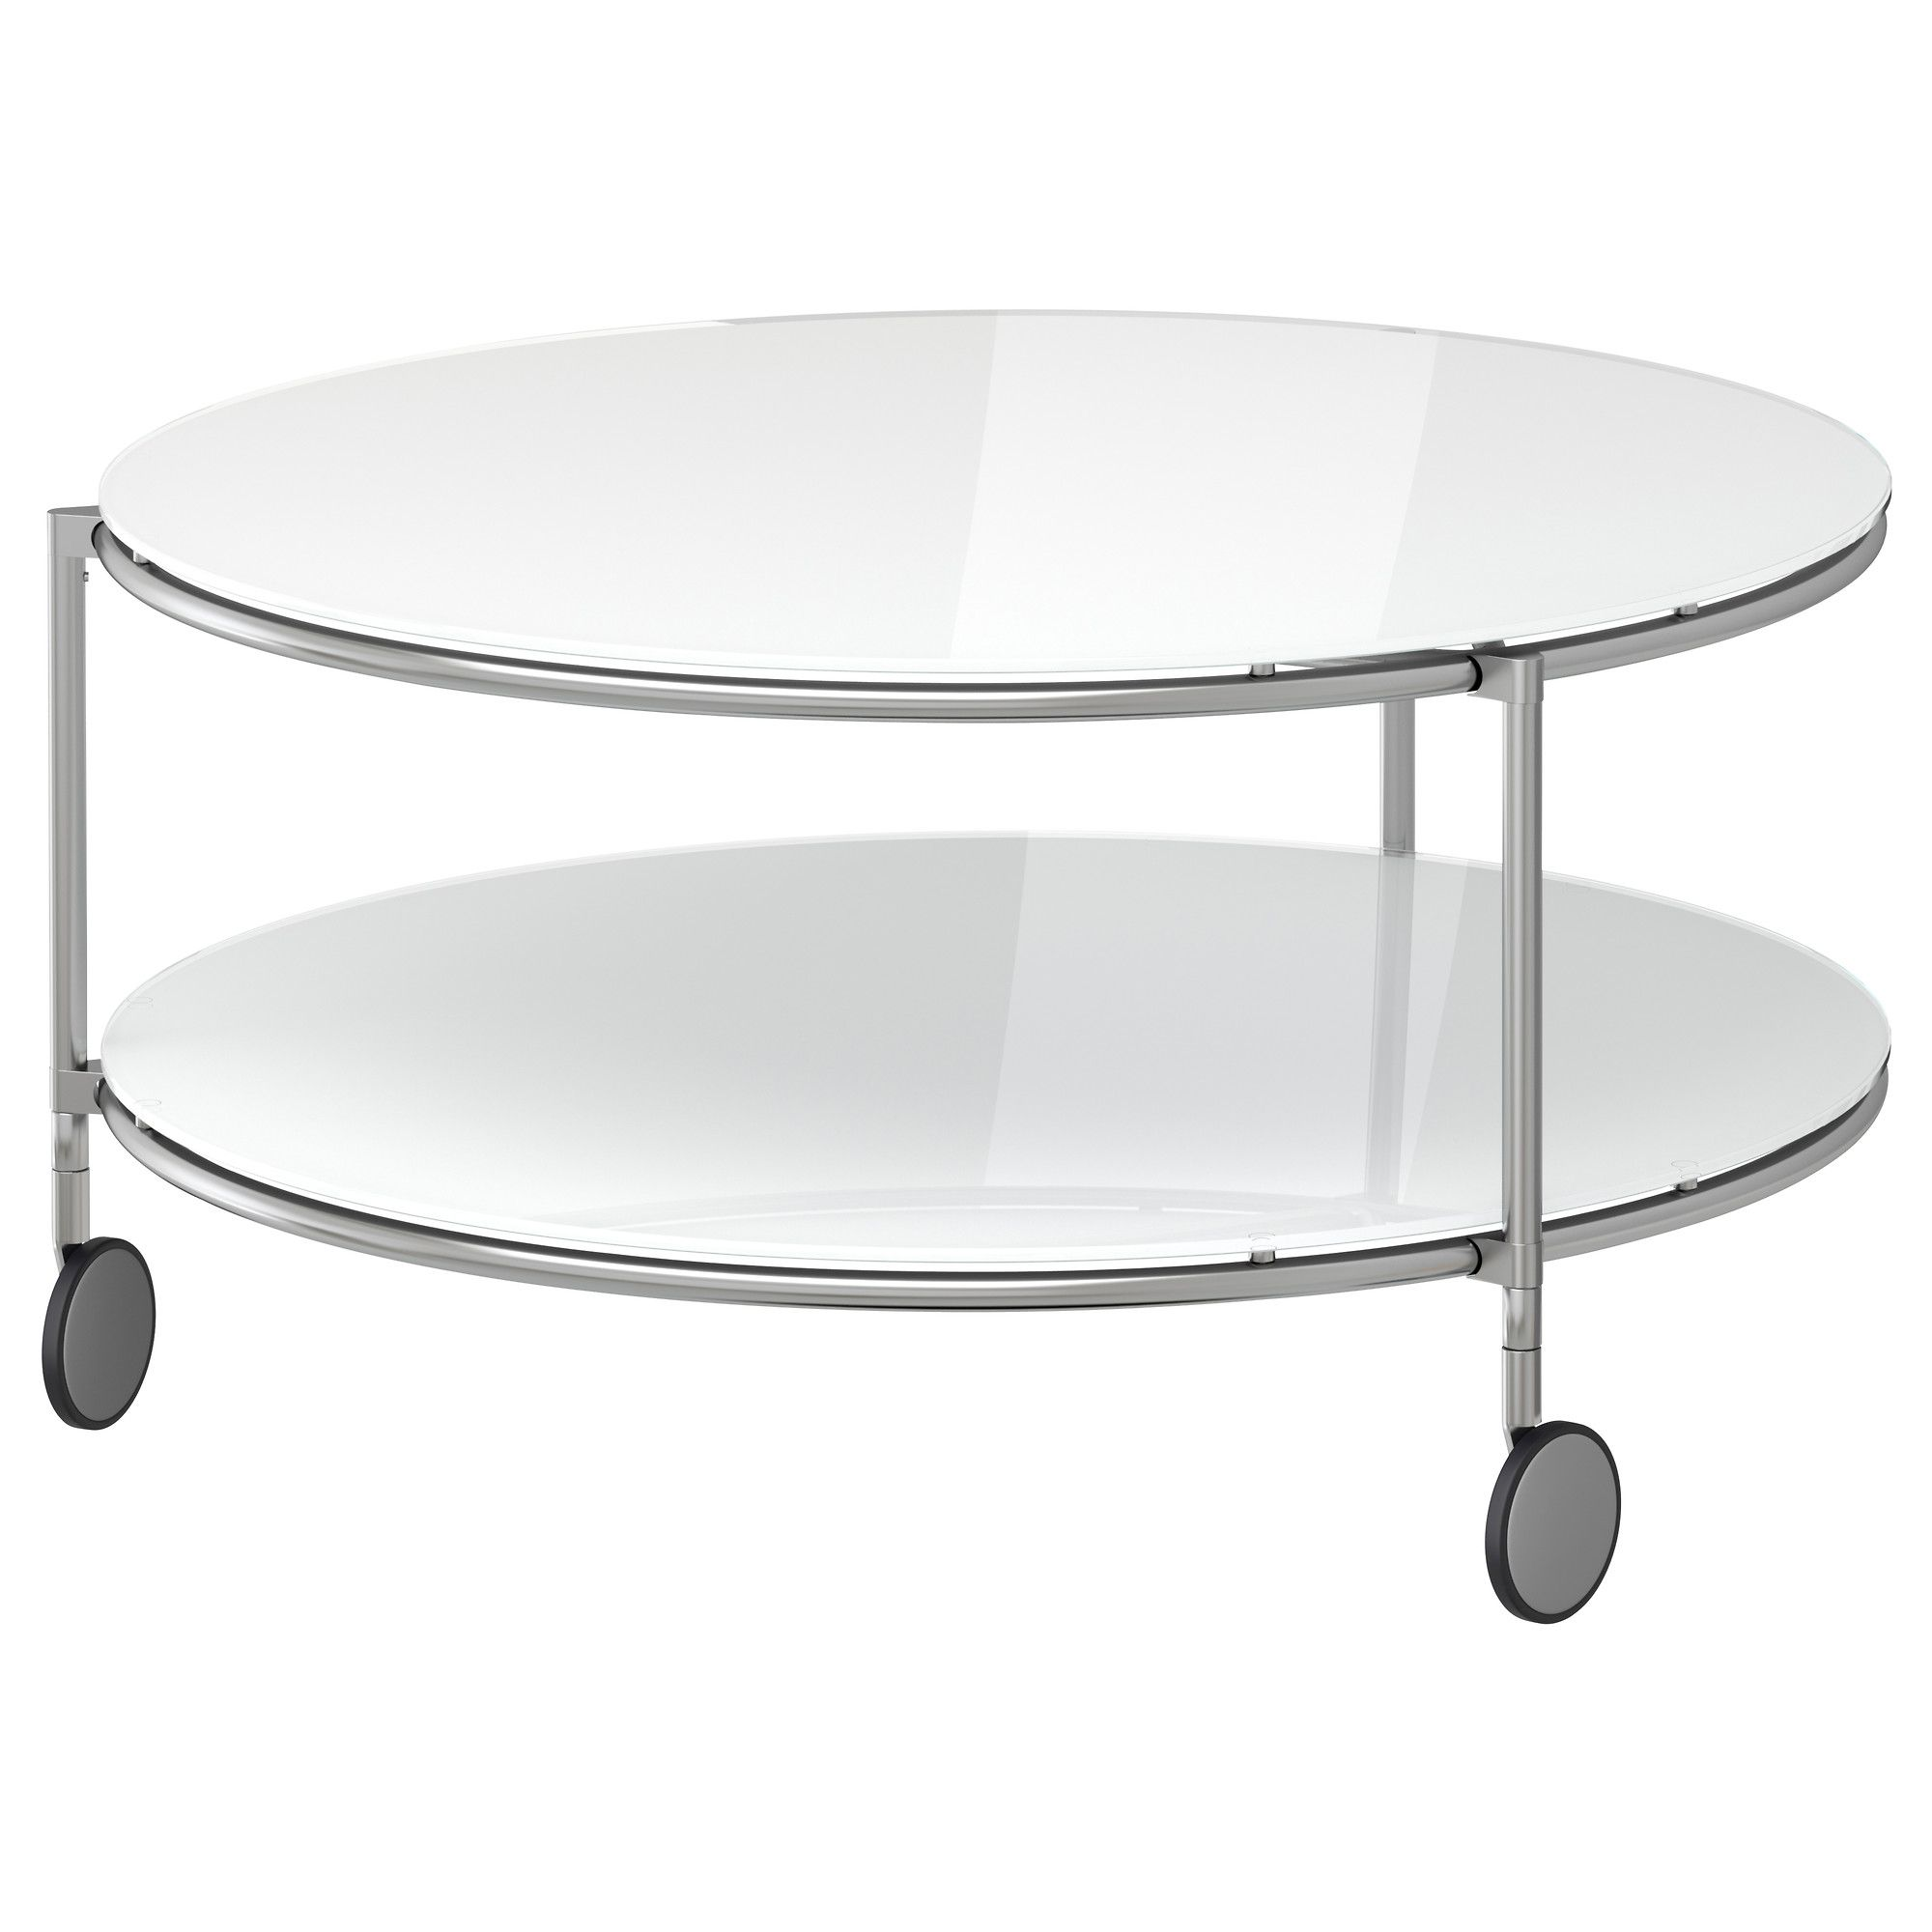 Table Basse Ikea Ronde Strind Table Basse Blanc Nickelé Ikea Tables Basses Table